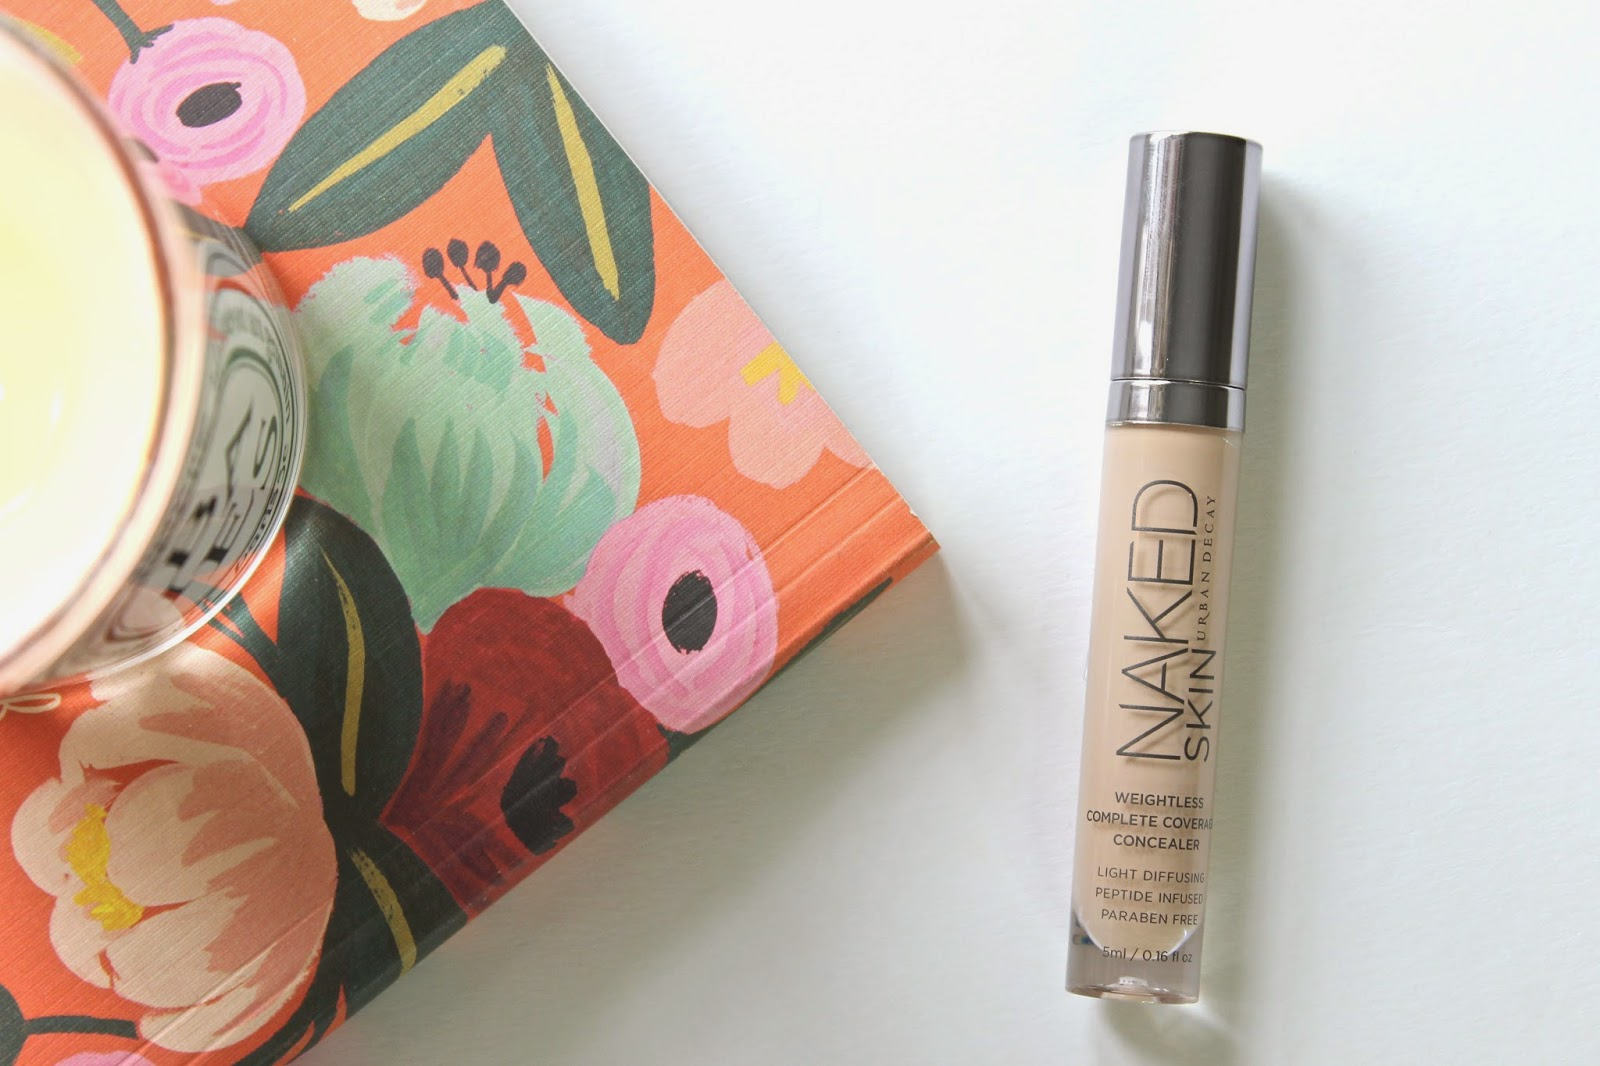 A VERY NAKED CONCEALER